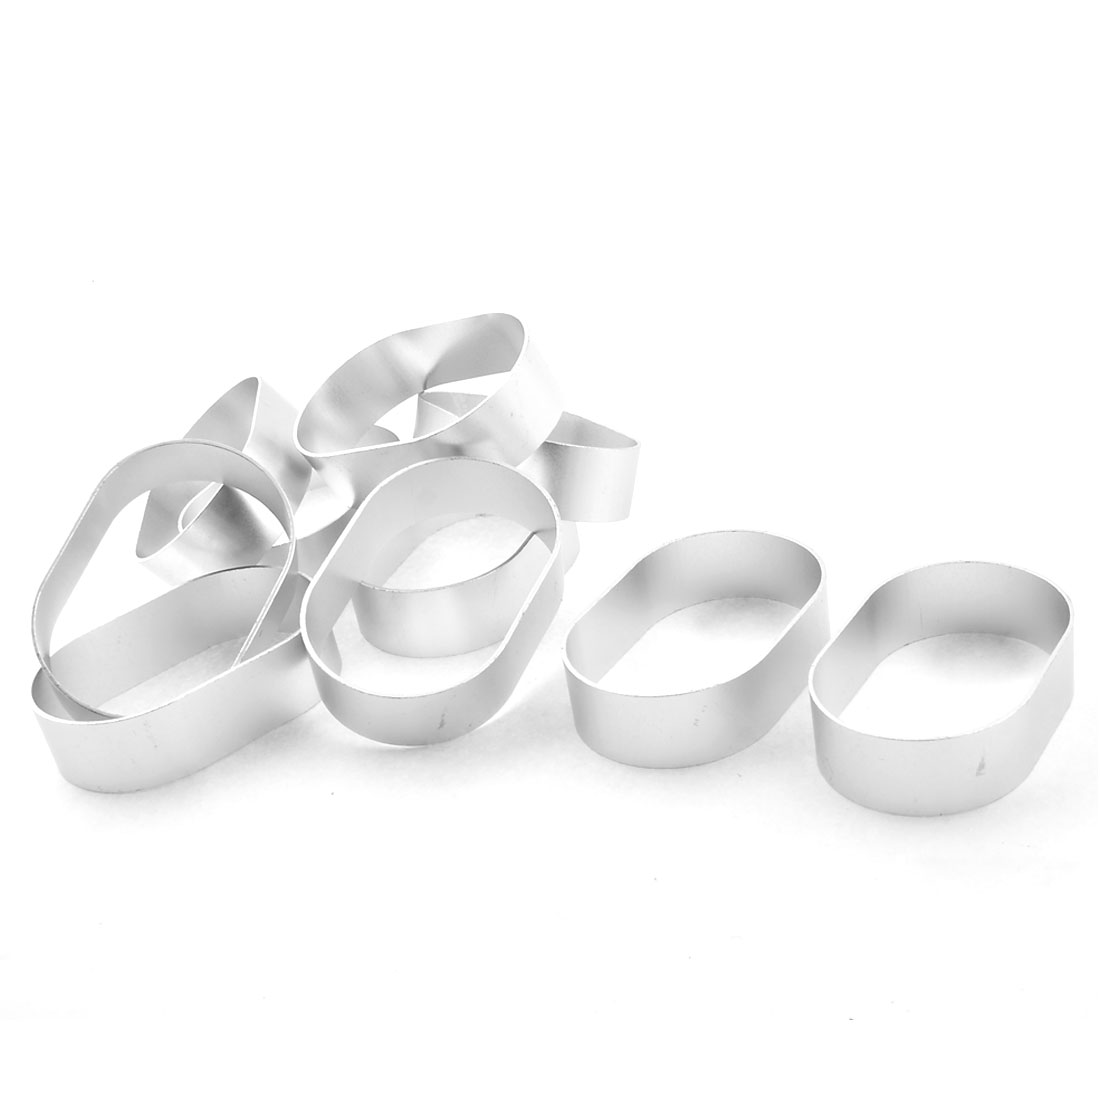 Oval Shaped Cookie Biscuit Cake Bread DIY Baking Cutter Mold Silver Tone 10pcs